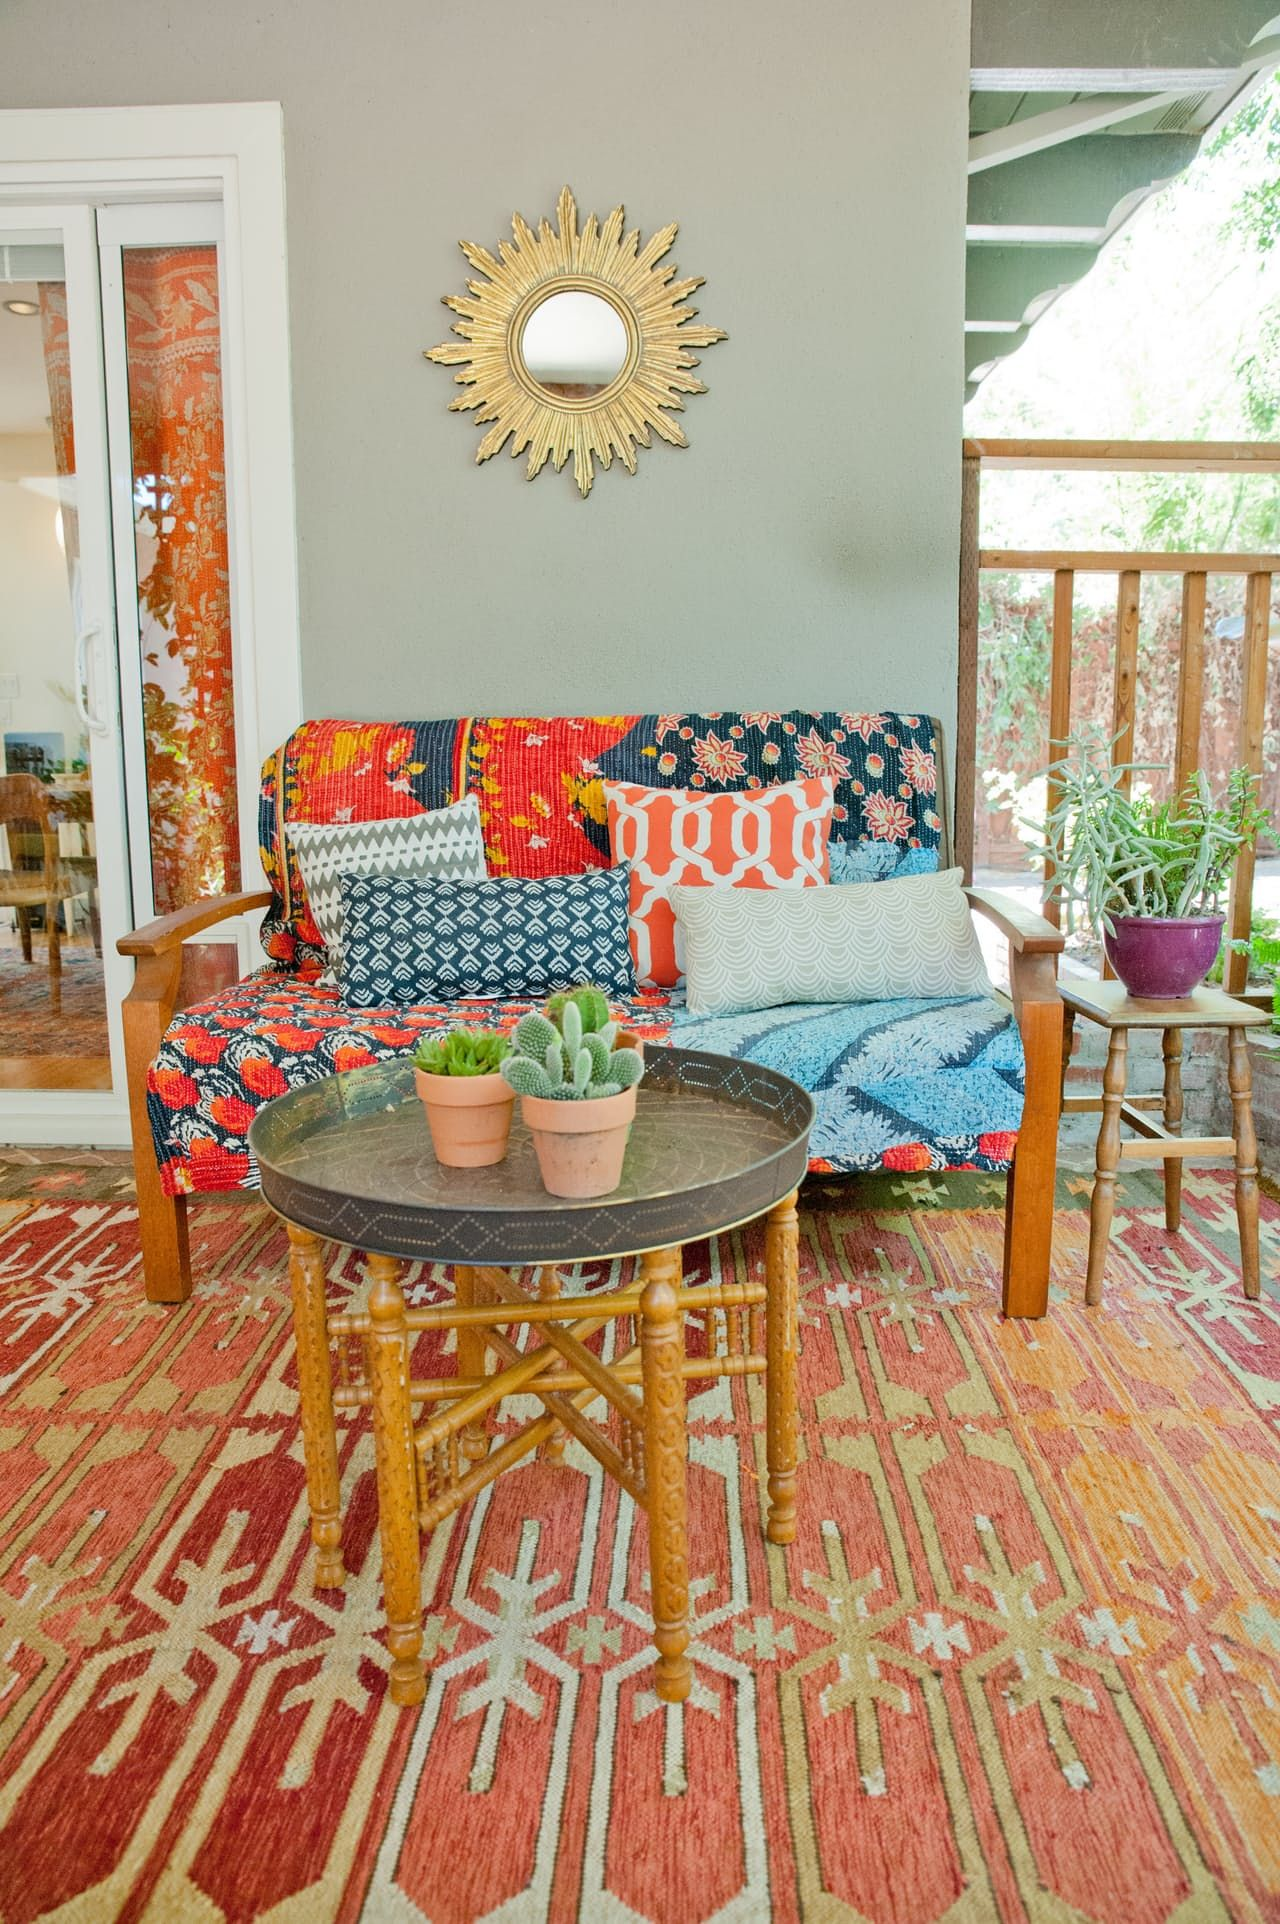 Home design bilder im freien house tour a cheery patterned oasis in california  house tour